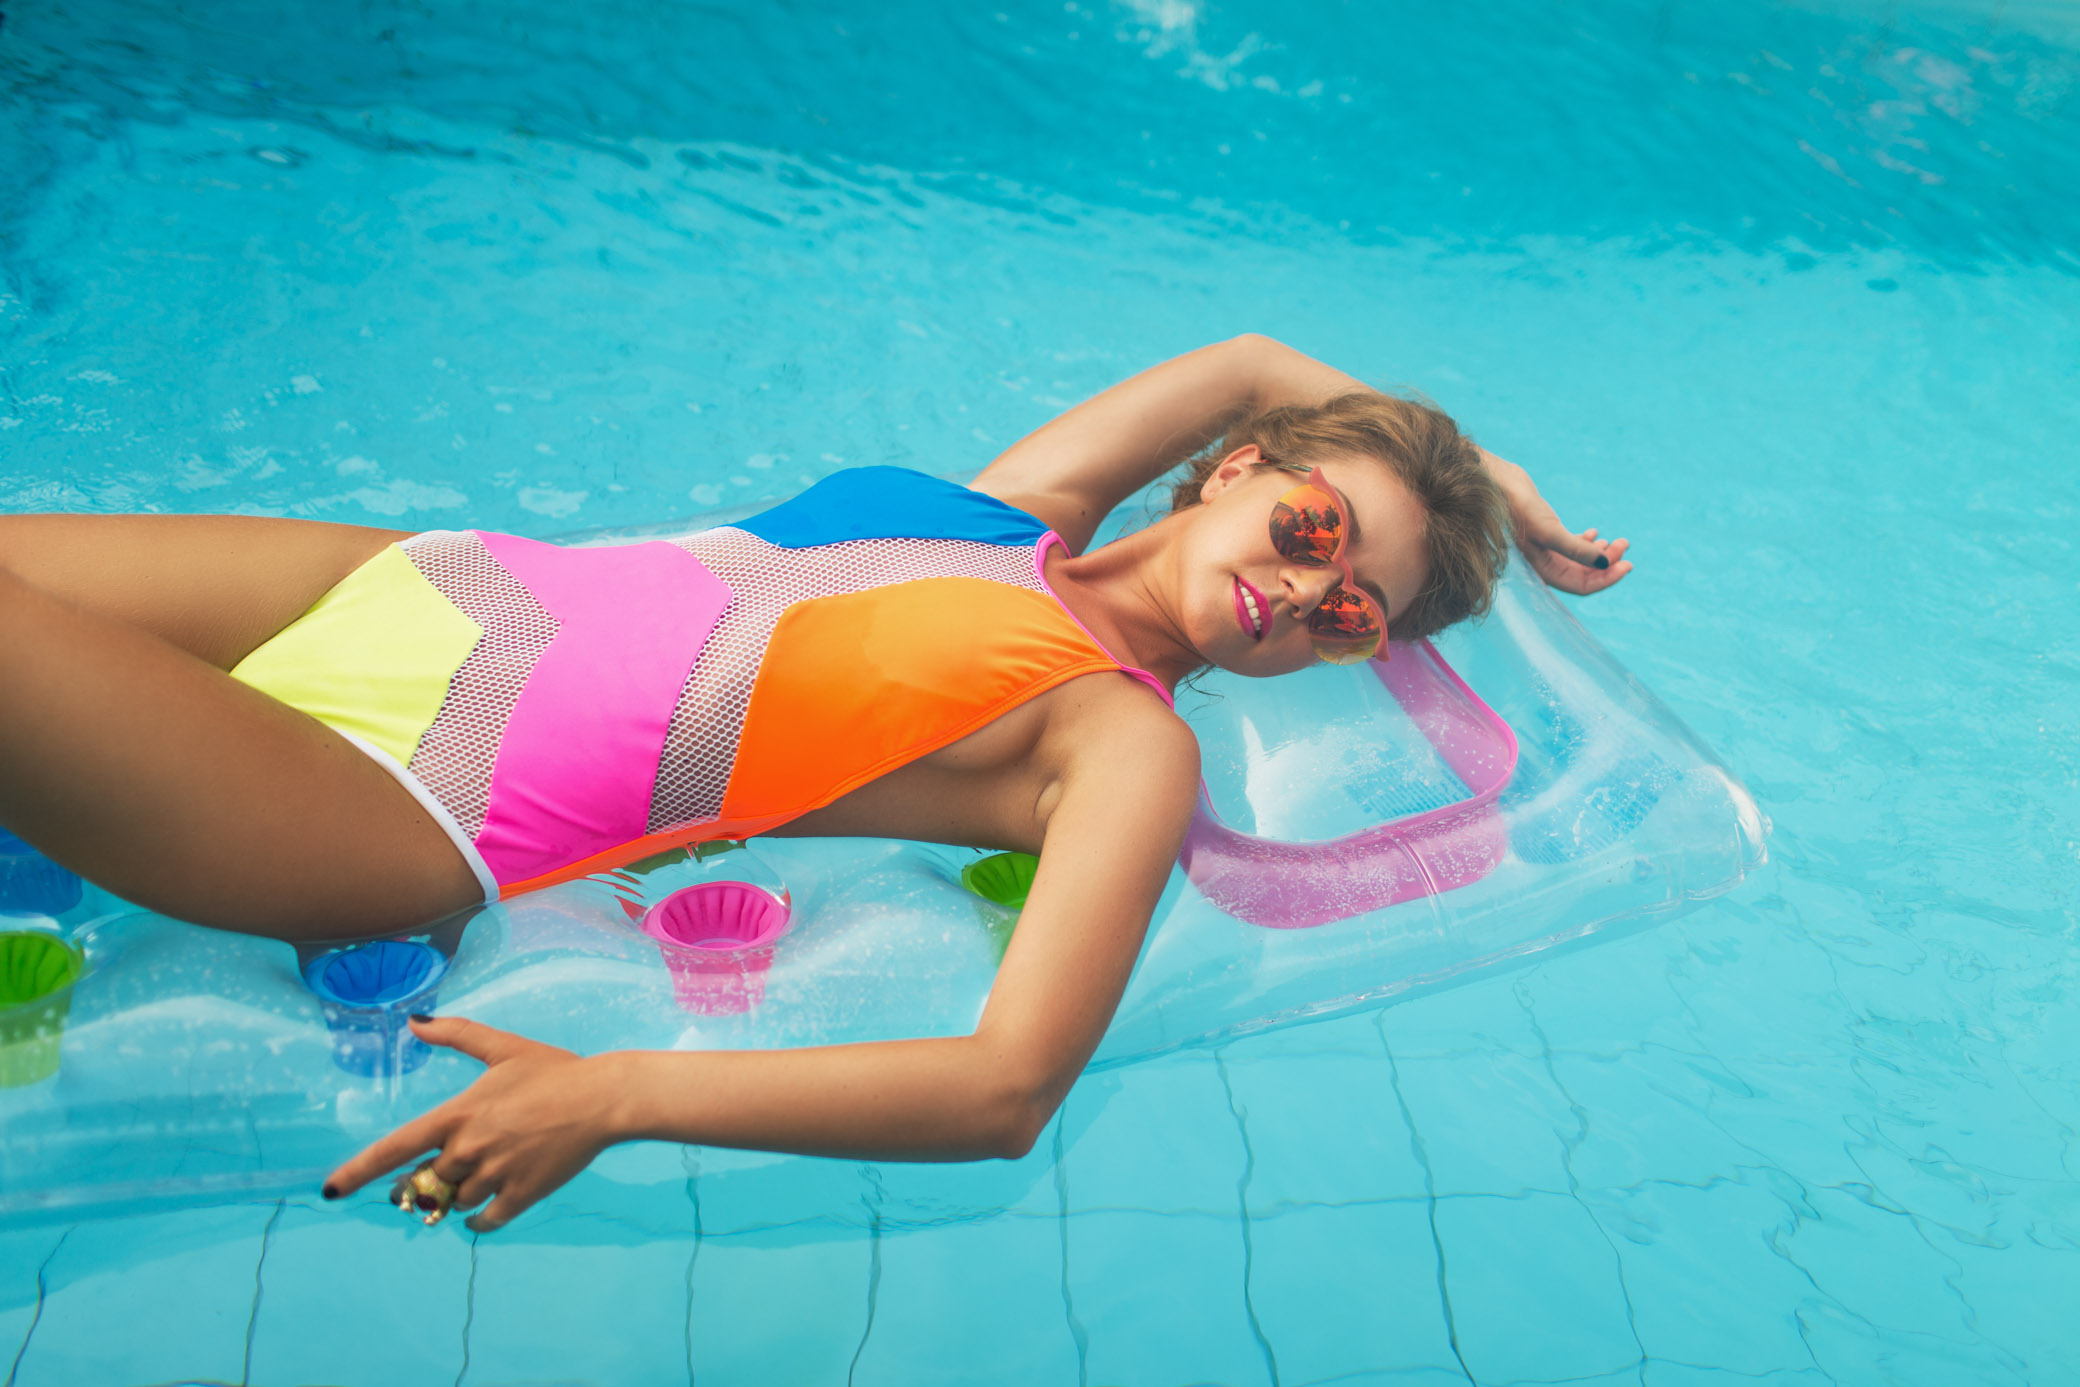 Fashion photoshoot in the pool